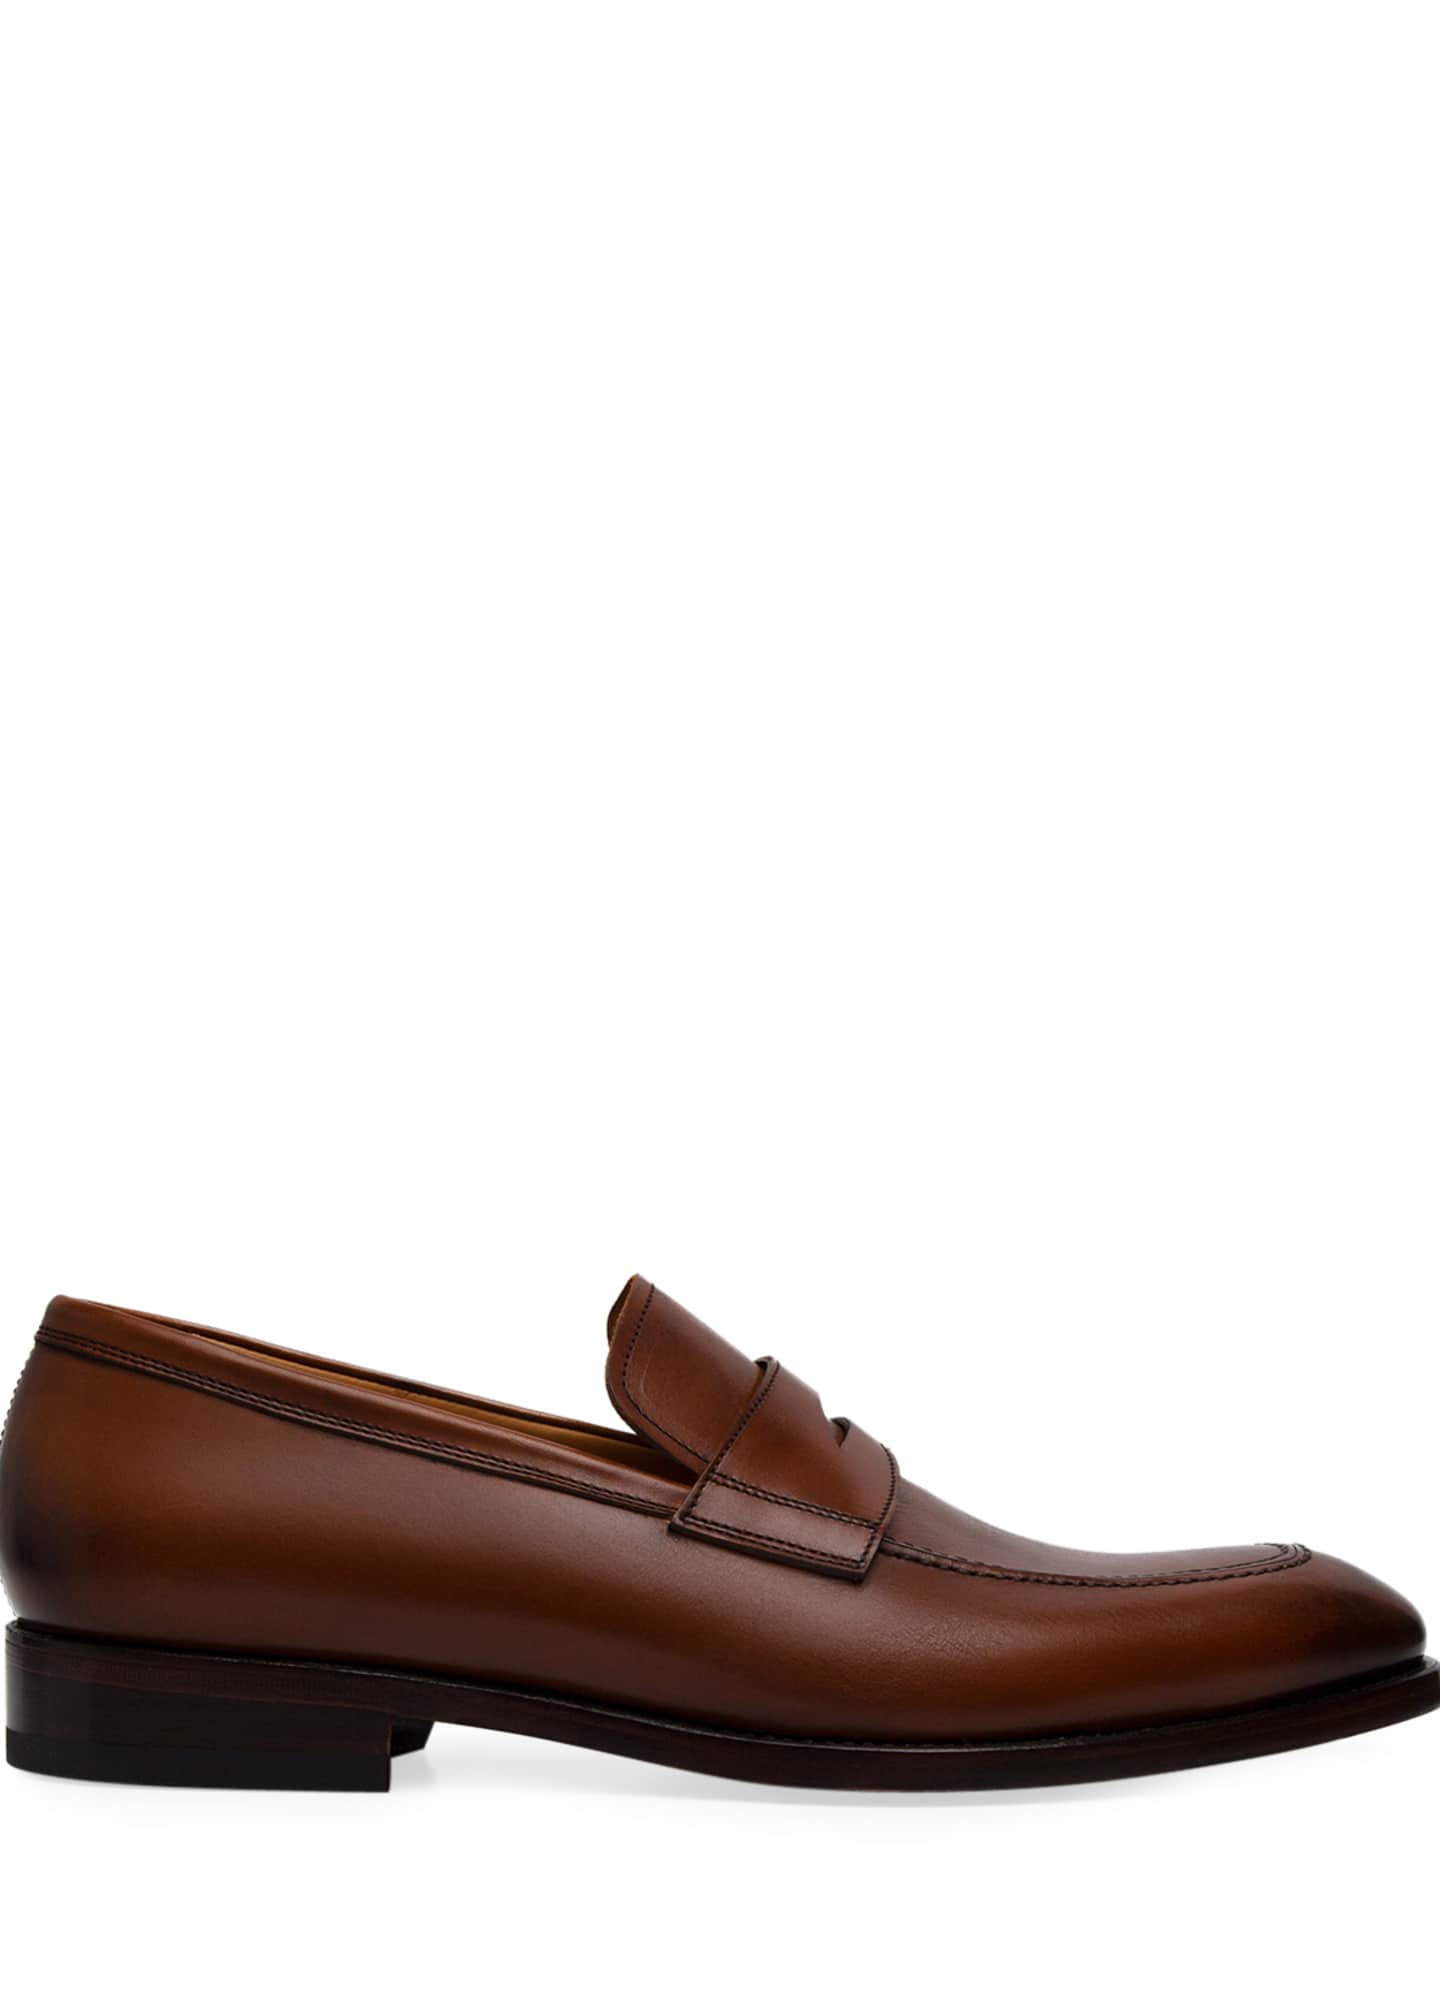 Image 2 of 2: Men's Lane Leather Penny Loafers